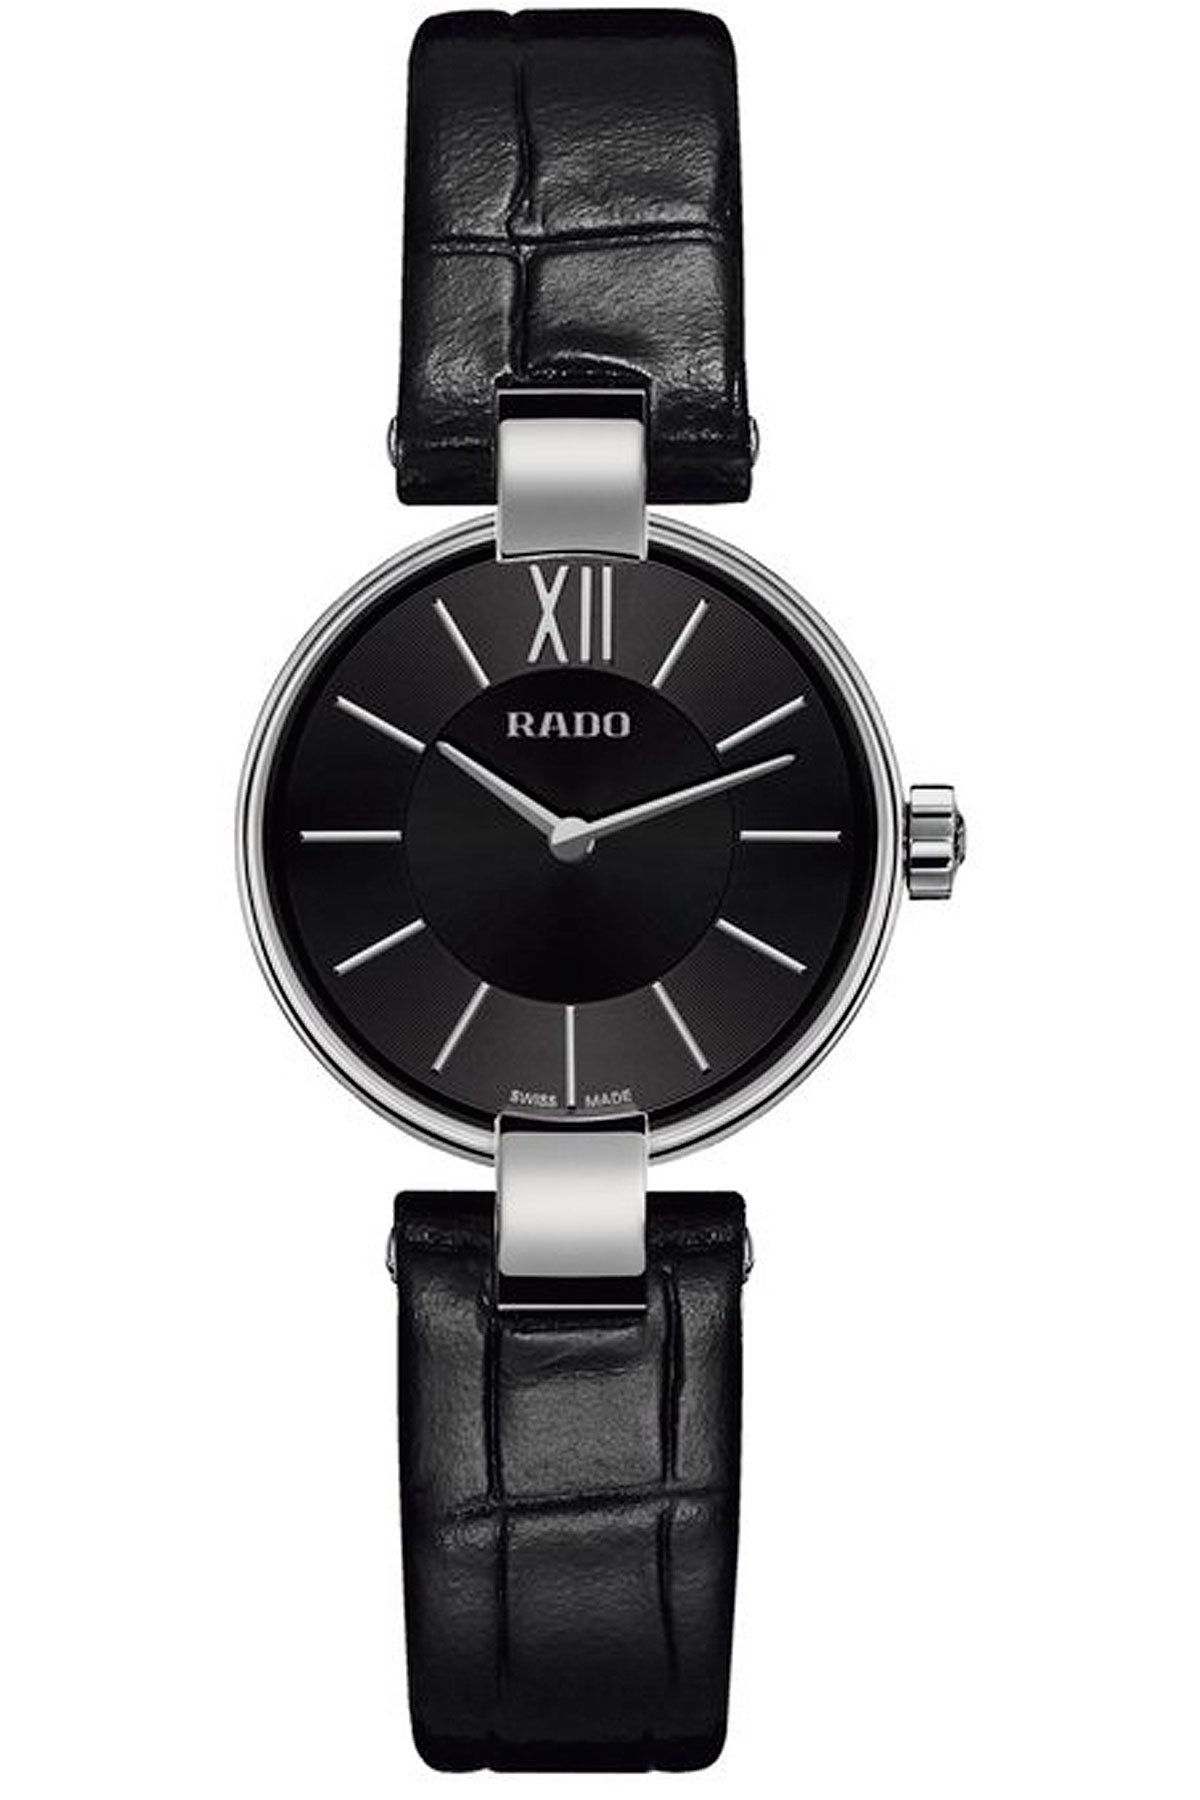 Rado Watch for Women, Black, Alligator Leather, 2019